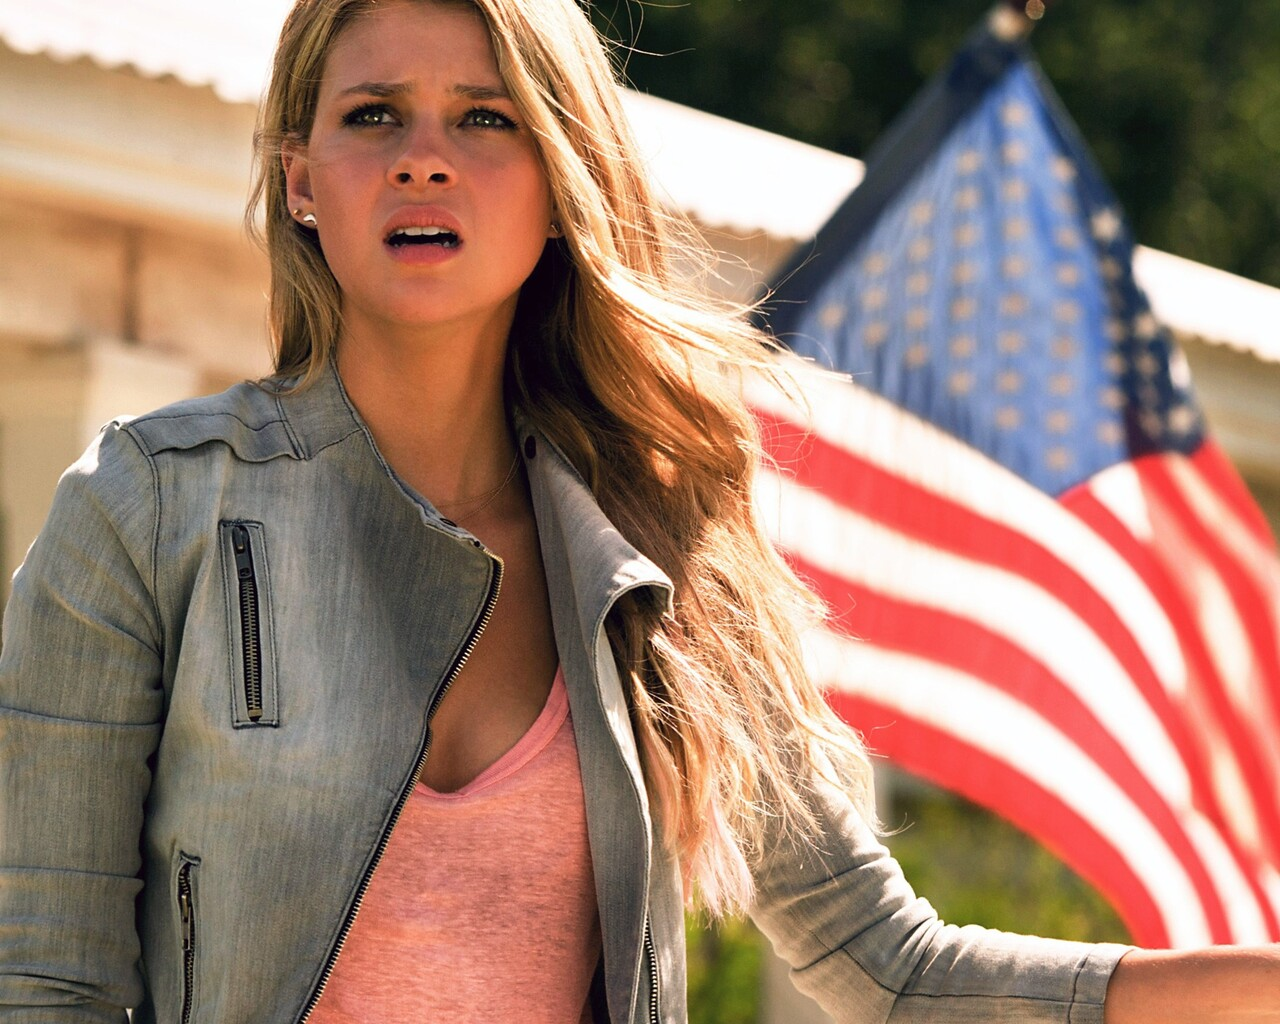 nicola-peltz-in-transformers-movie.jpg